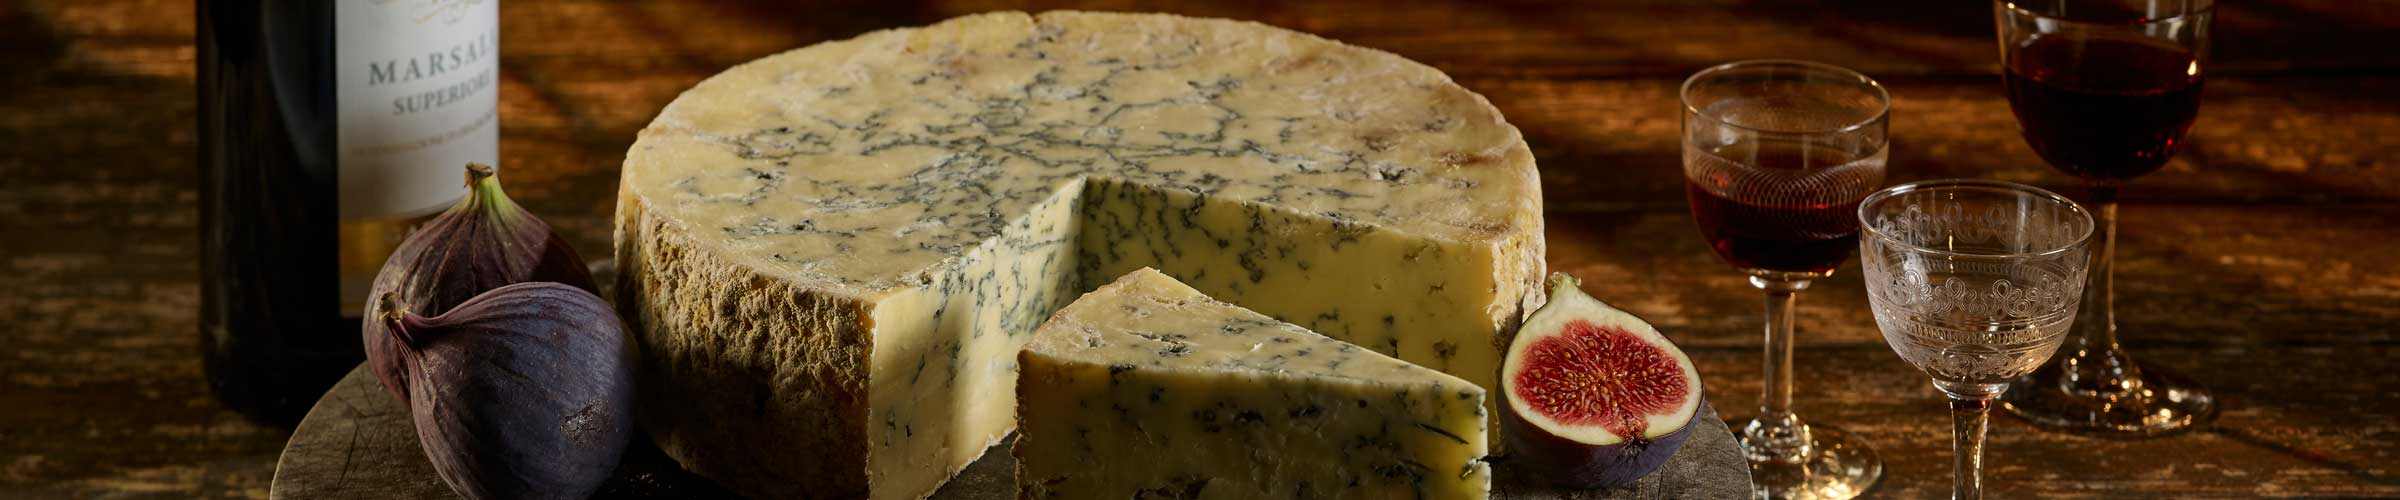 SA UK Canada Coombe Castle International Blue Cheese Blue Stilton